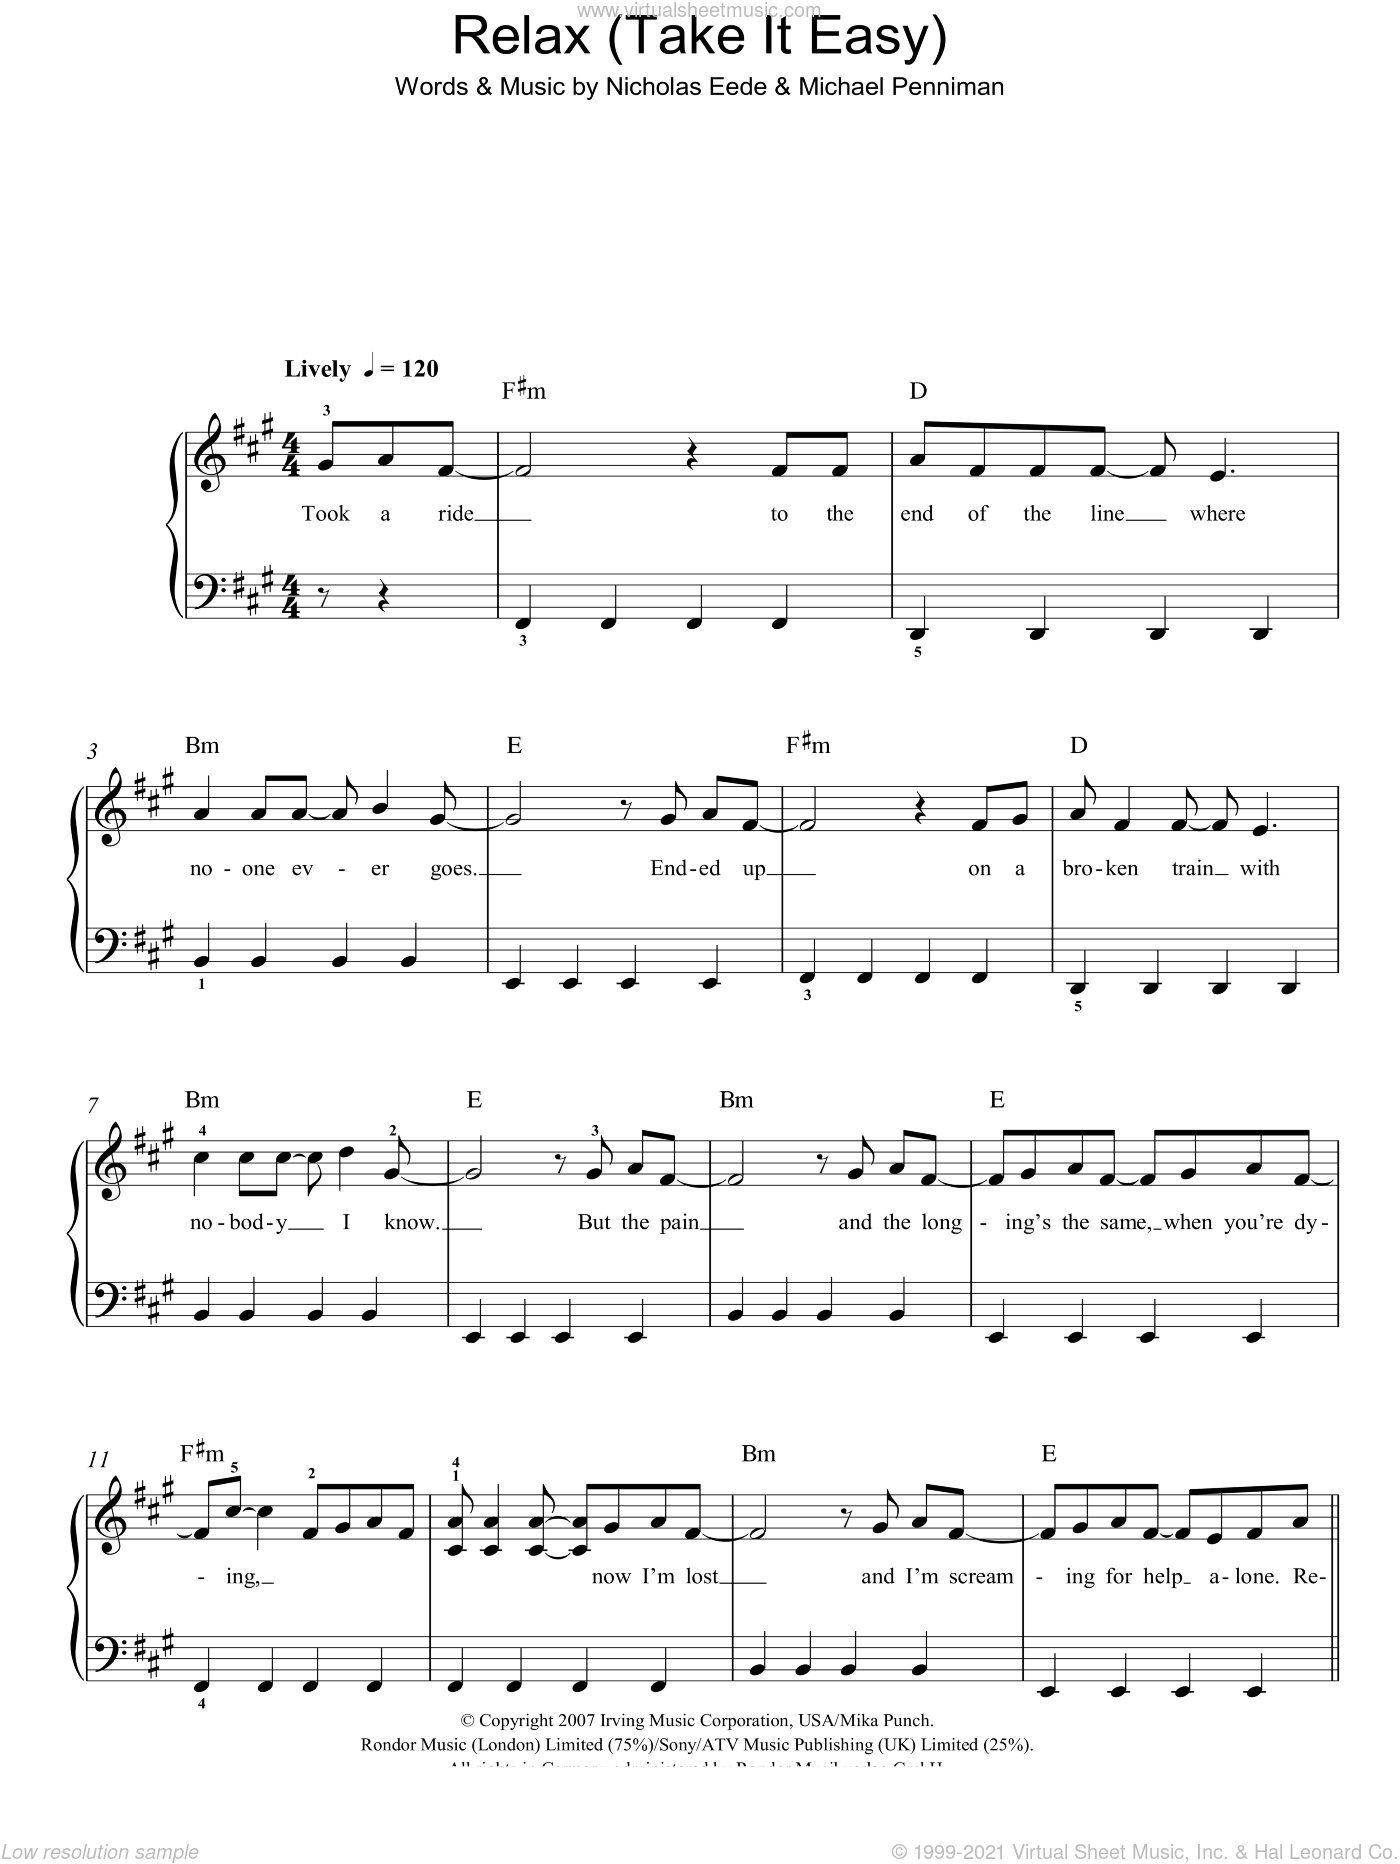 Relax (Take It Easy) sheet music for piano solo (chords) by Michael Penniman